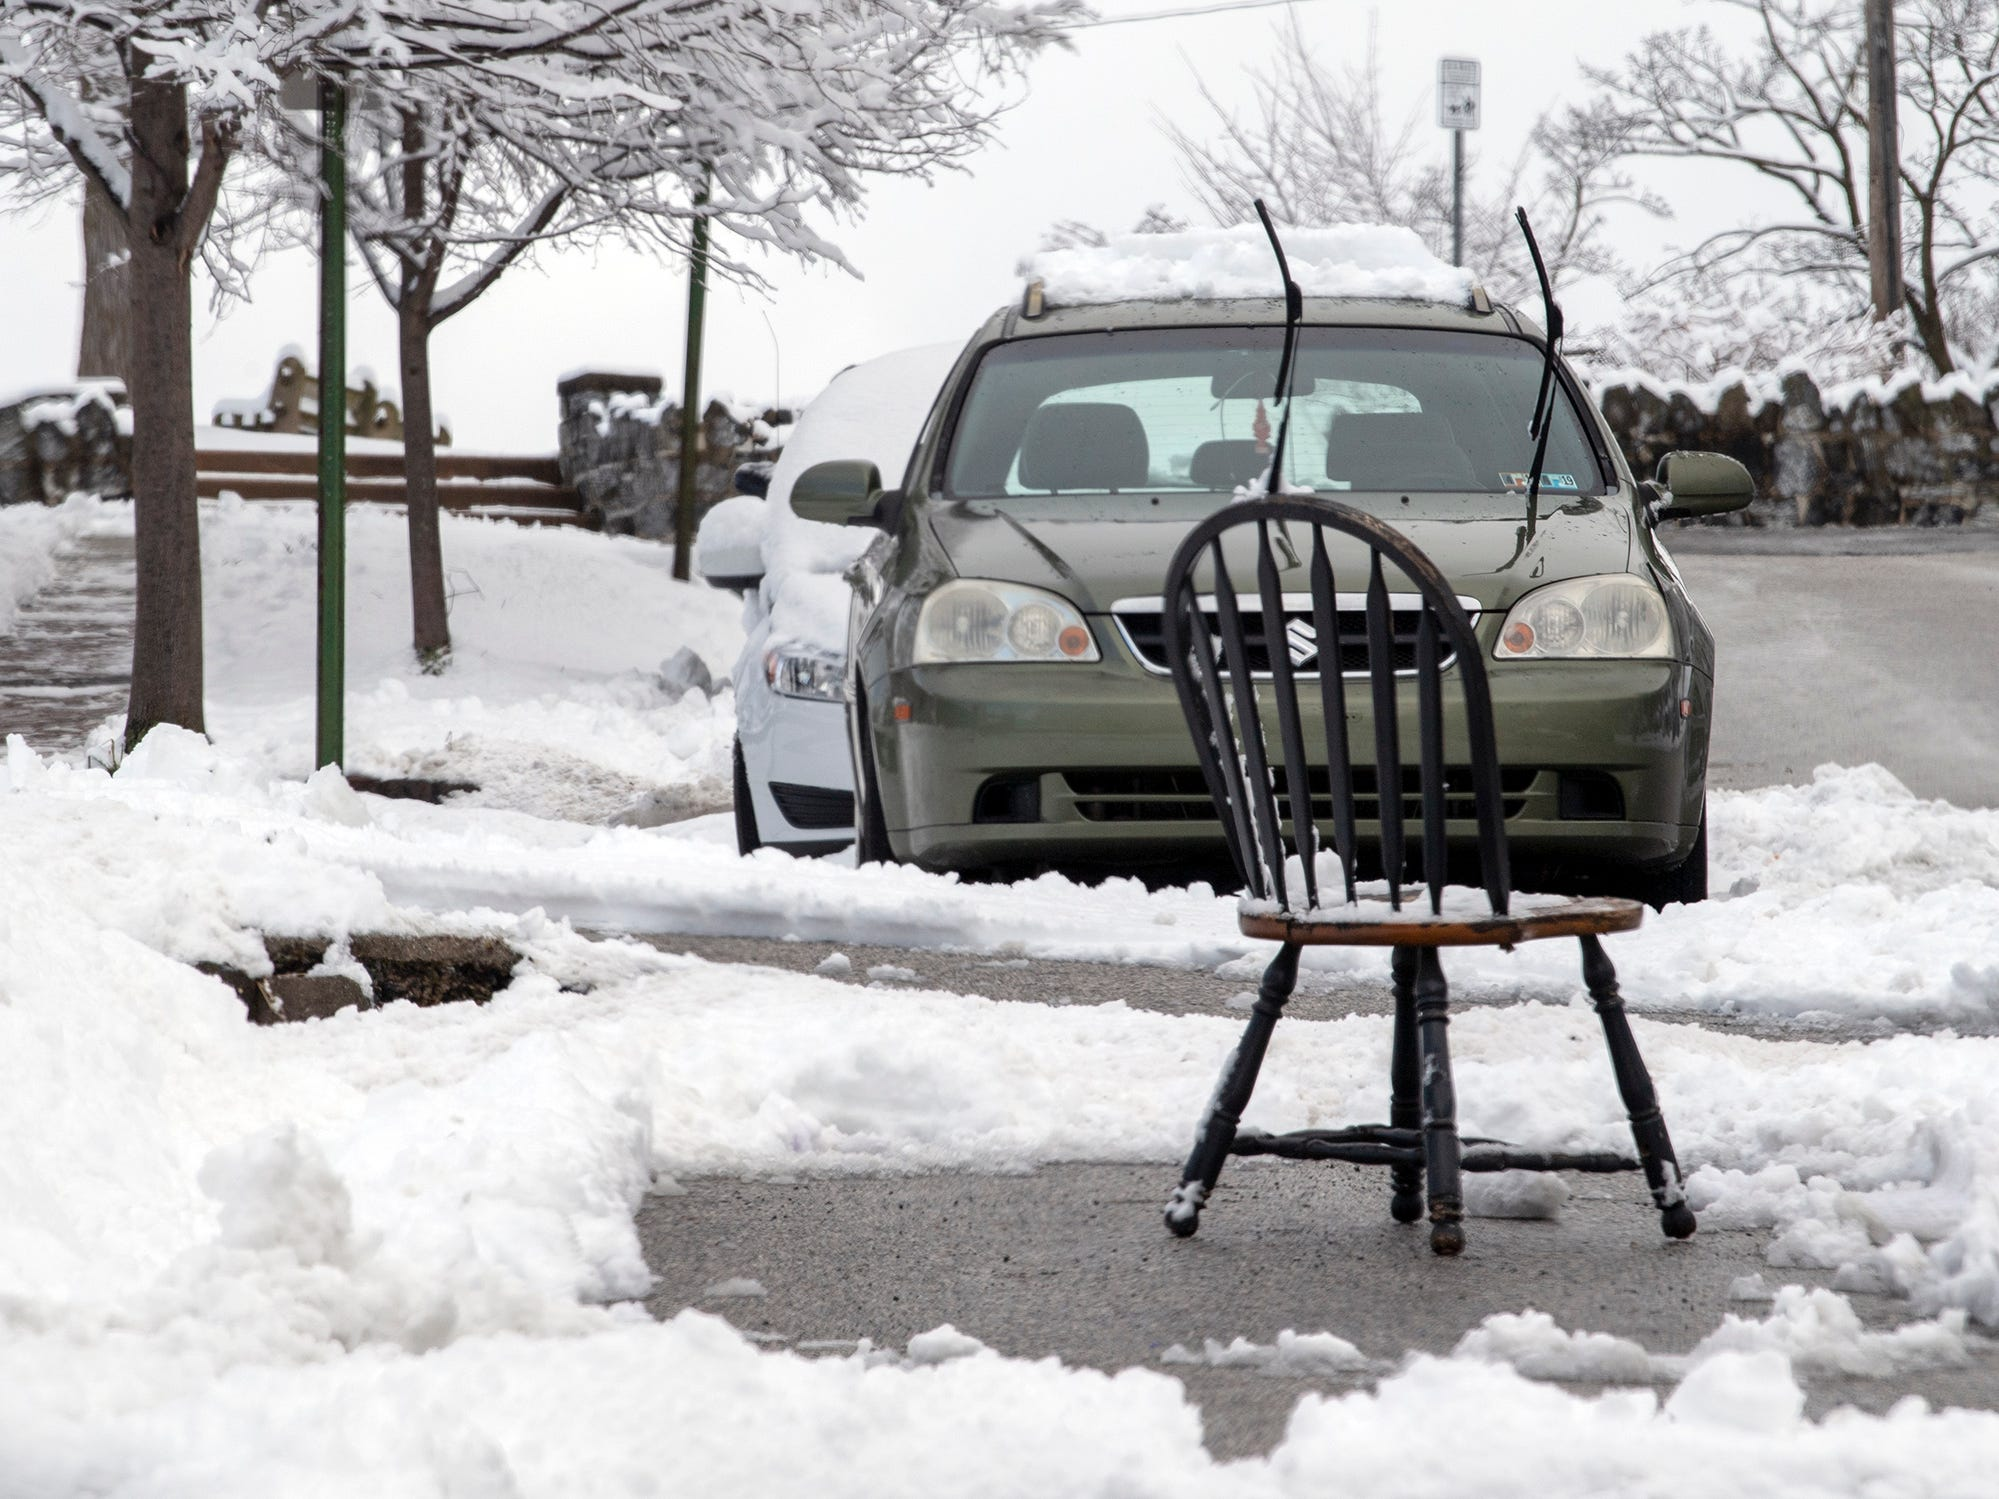 A snow day in York wouldn't be complete without a chair saving a parking space and wipers up. City police remind residents it's illegal to save those spots, even after the hard work spent digging them out.